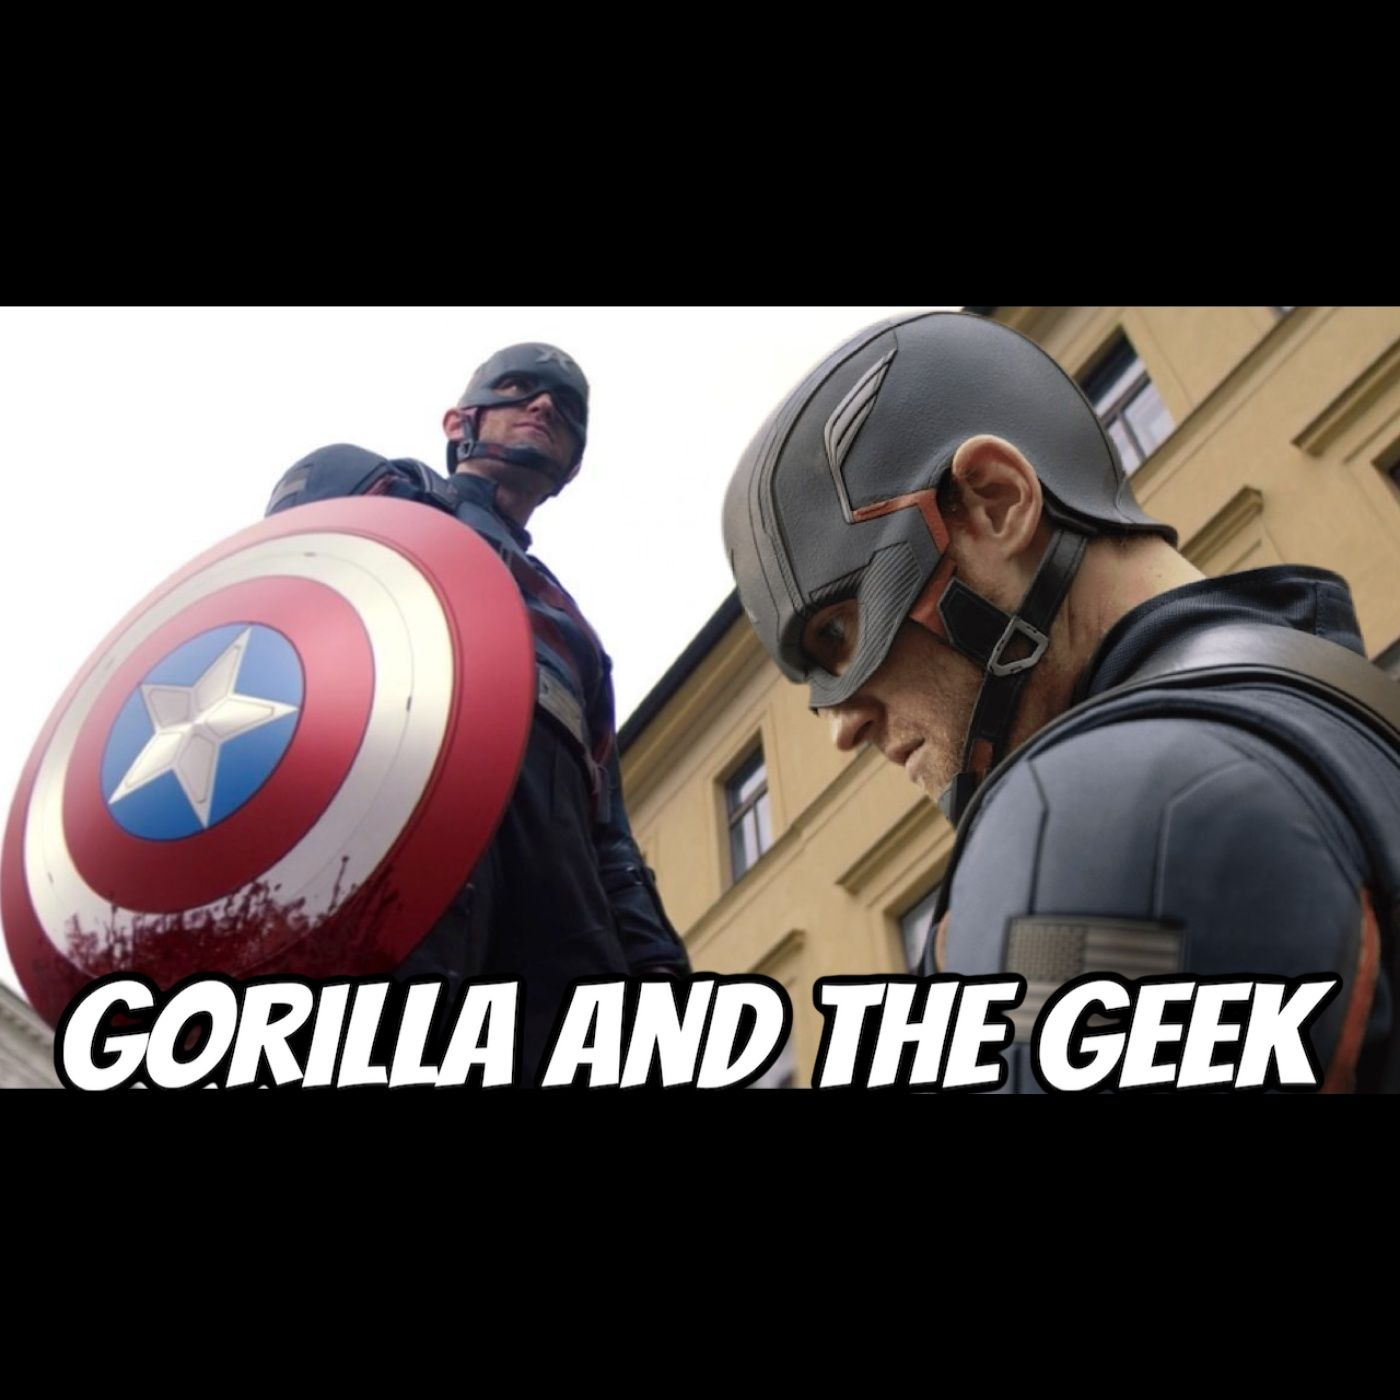 Falcon and The Winter Soldier Episodes 2-4 Discussion - Gorilla and The Geek Episode 41